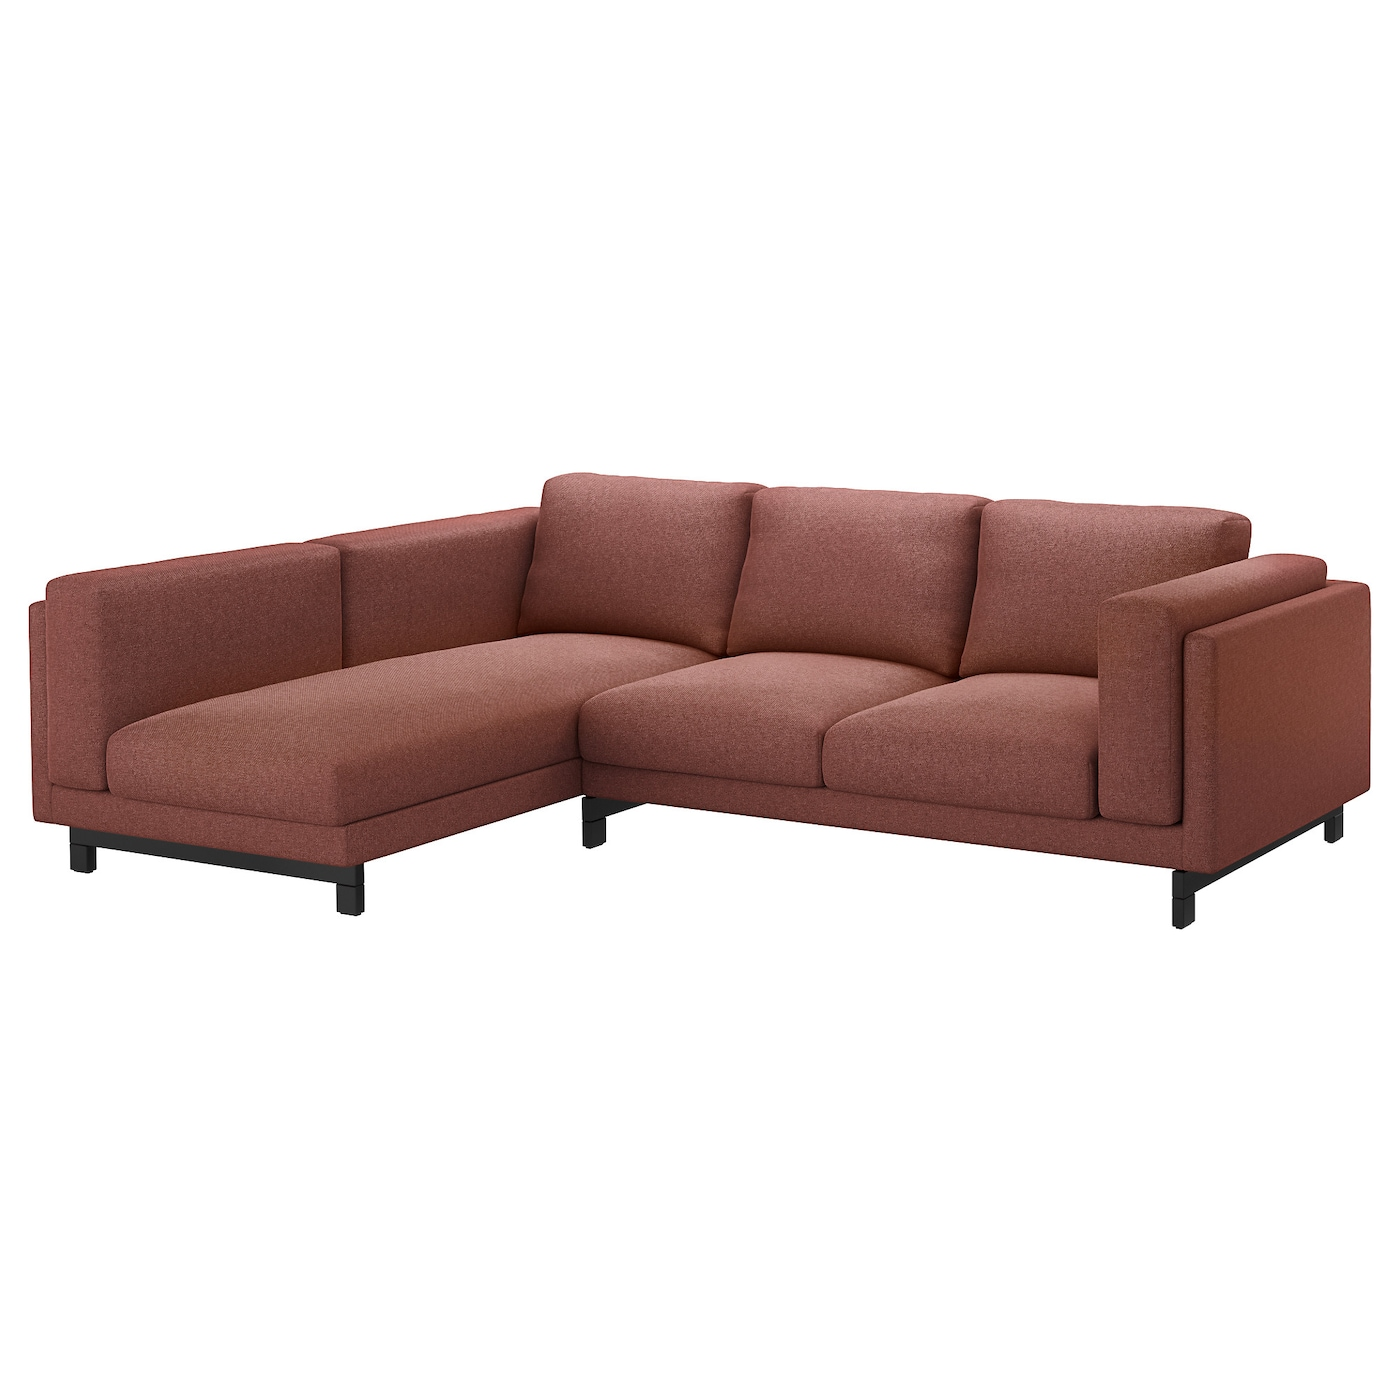 nockeby two seat sofa w chaise longue left tallmyra rust. Black Bedroom Furniture Sets. Home Design Ideas